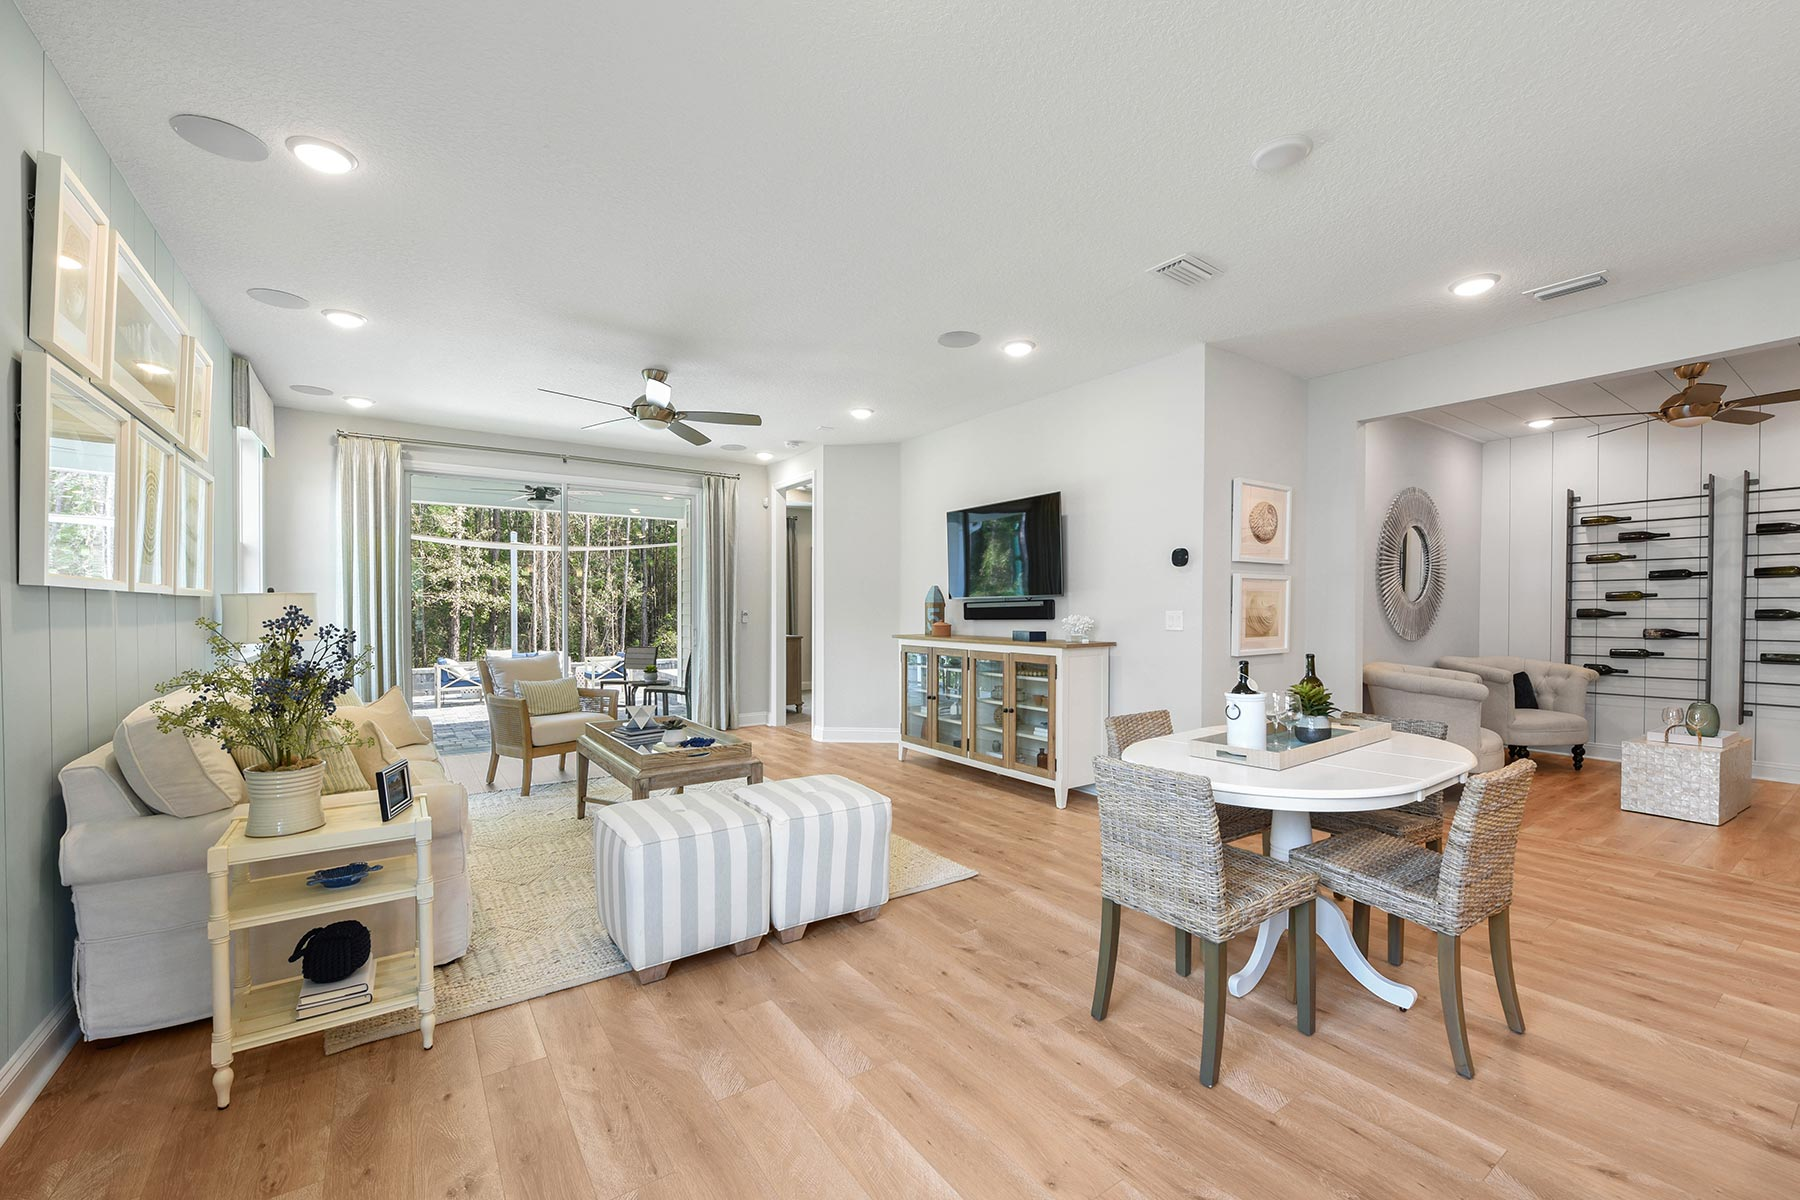 Ocean Plan Greatroom at RiverTown - WaterSong in St. Johns Florida by Mattamy Homes